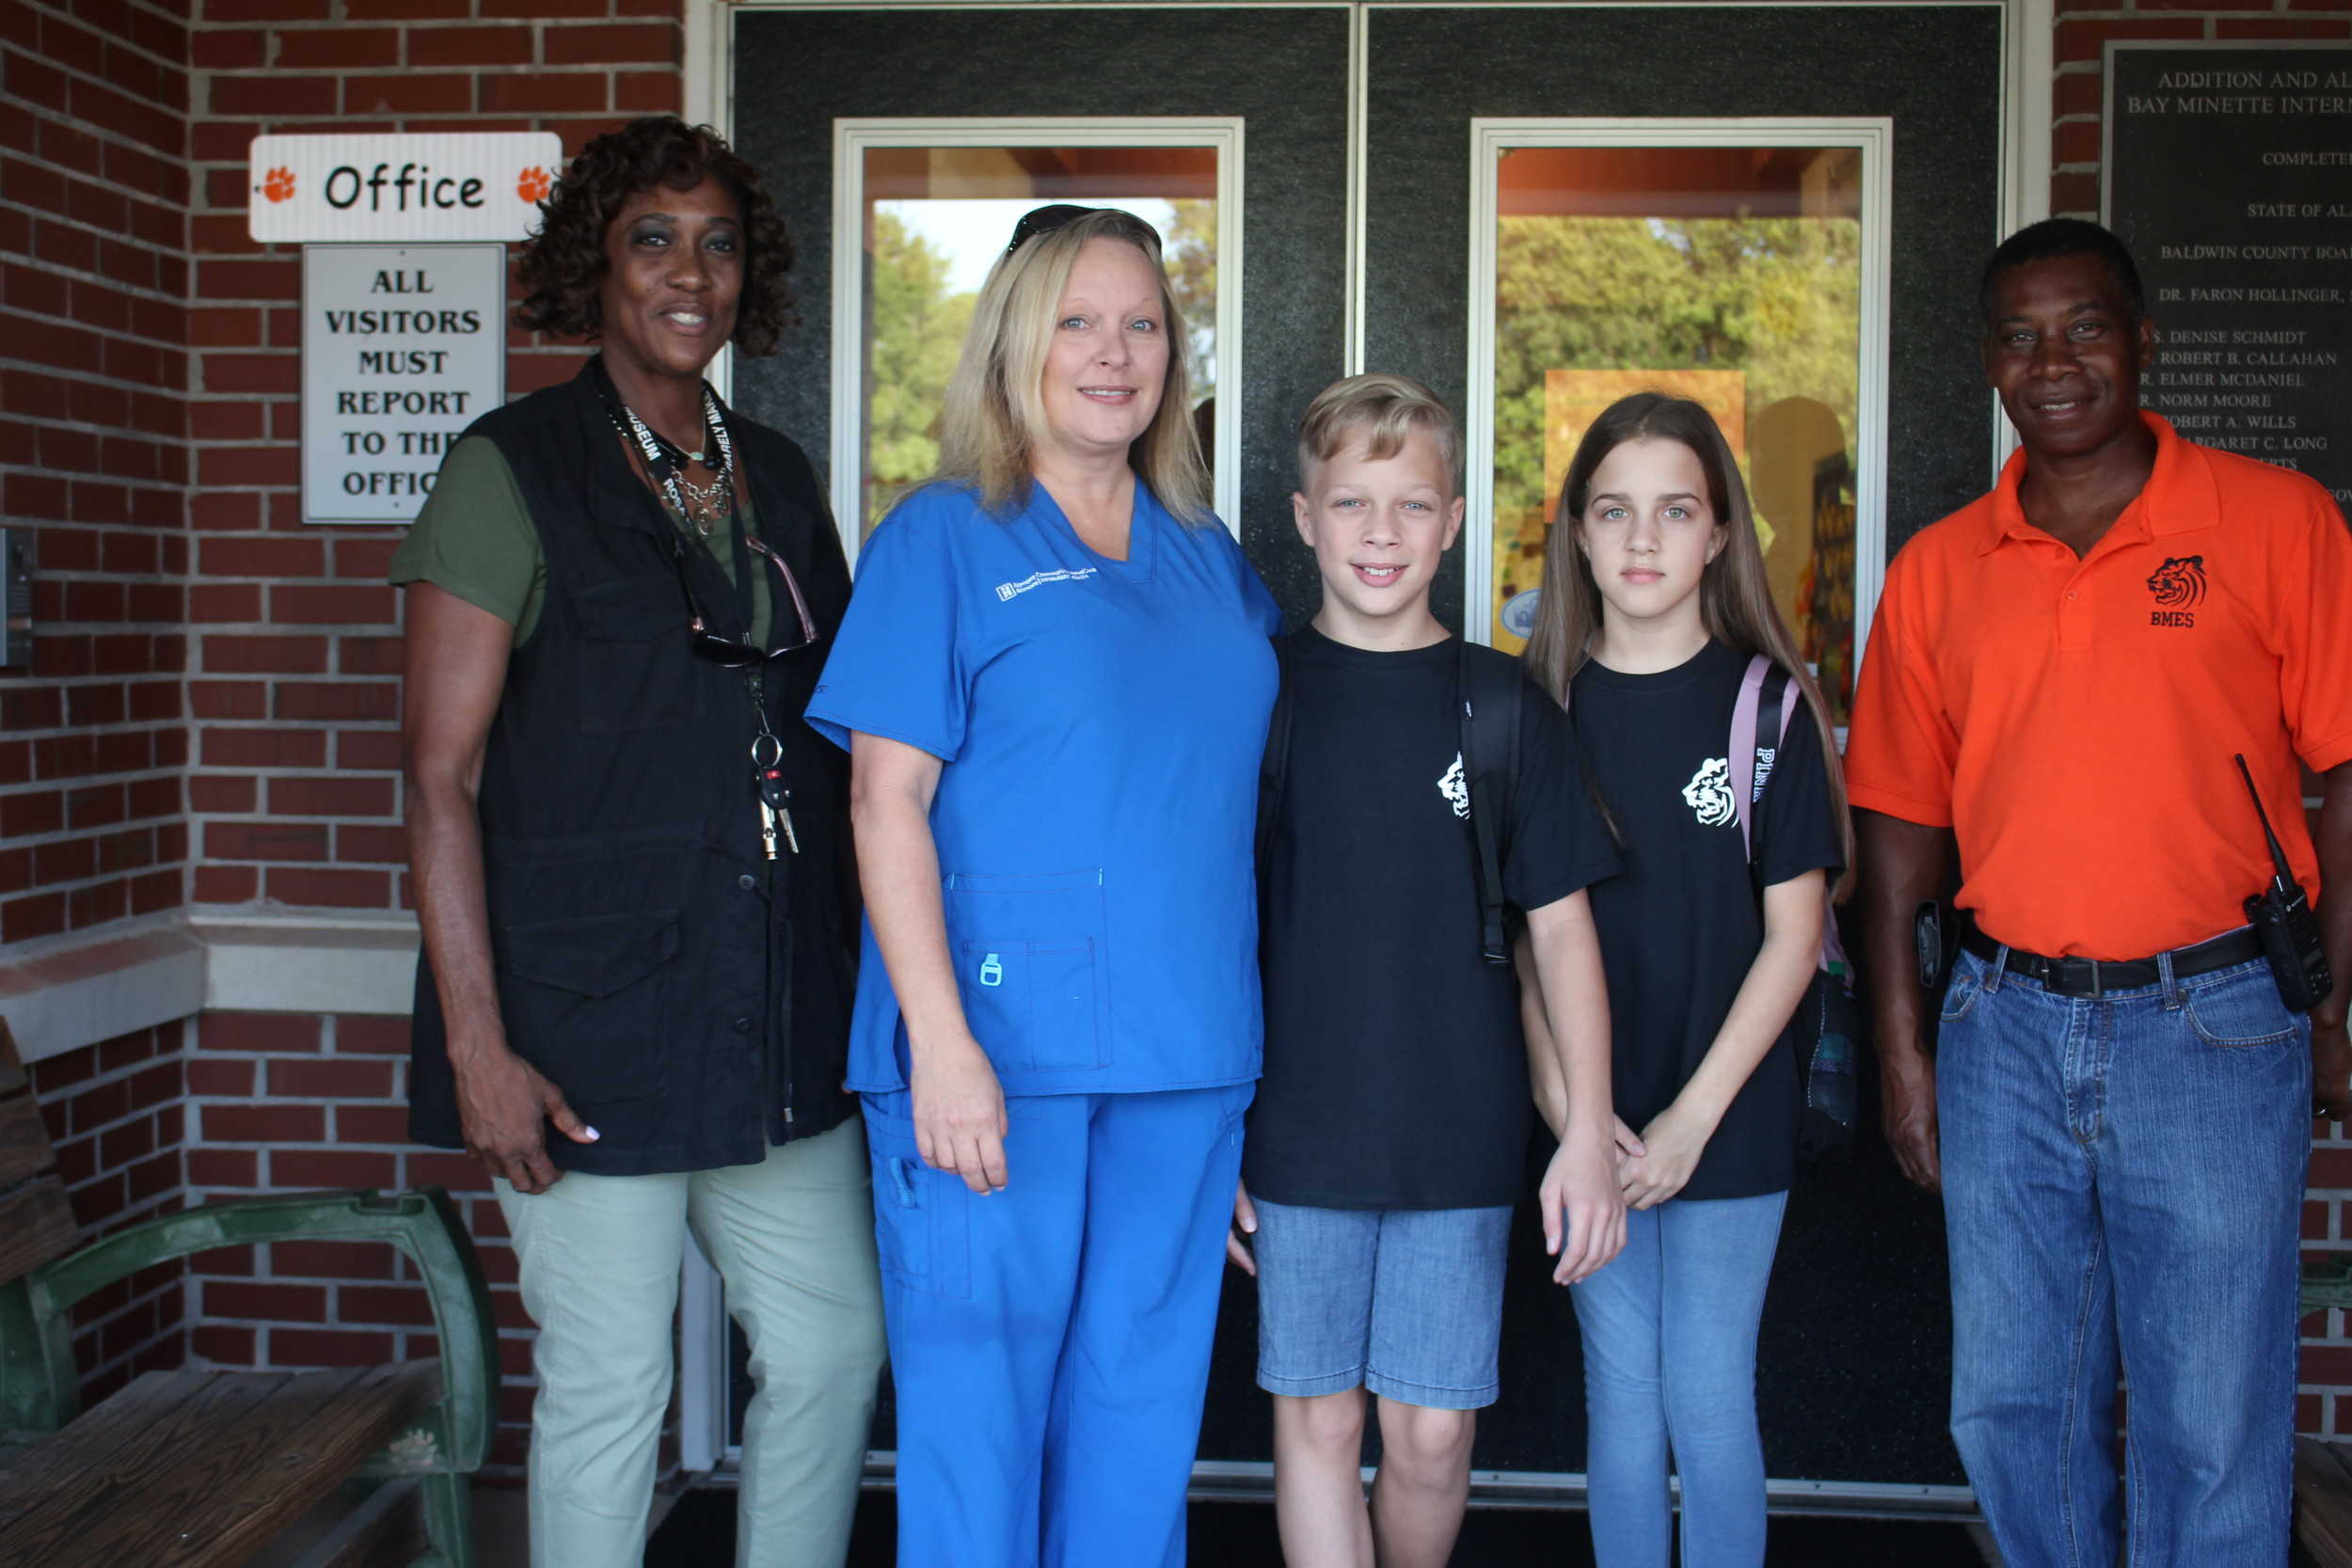 Sixth grade teacher Merlyn Kittrell and maintenance staff member Albert Bishop were on hand to greet parents and students on the first day of school. Melissa Roberts brings twins Landon and Kara to school to begin sixth grade.